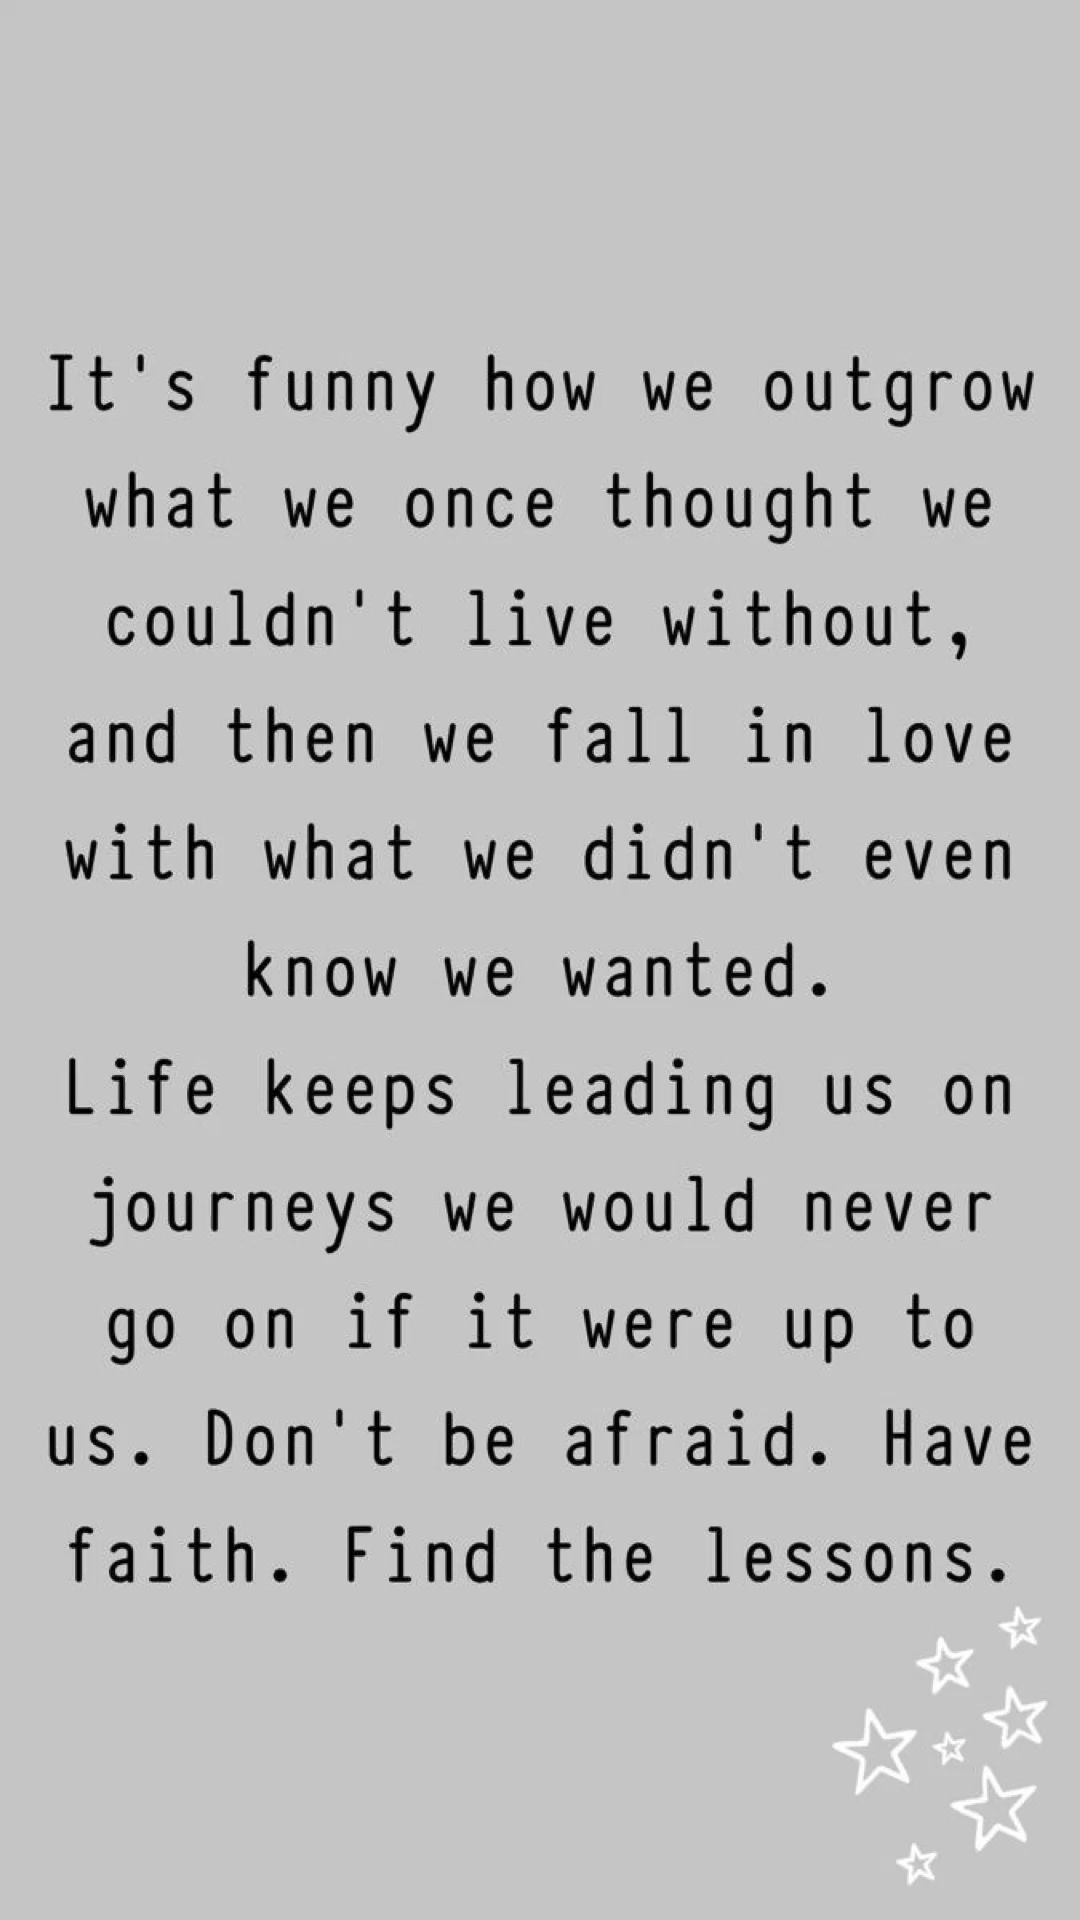 Positive & Life Affirming Quotes To Start The Day